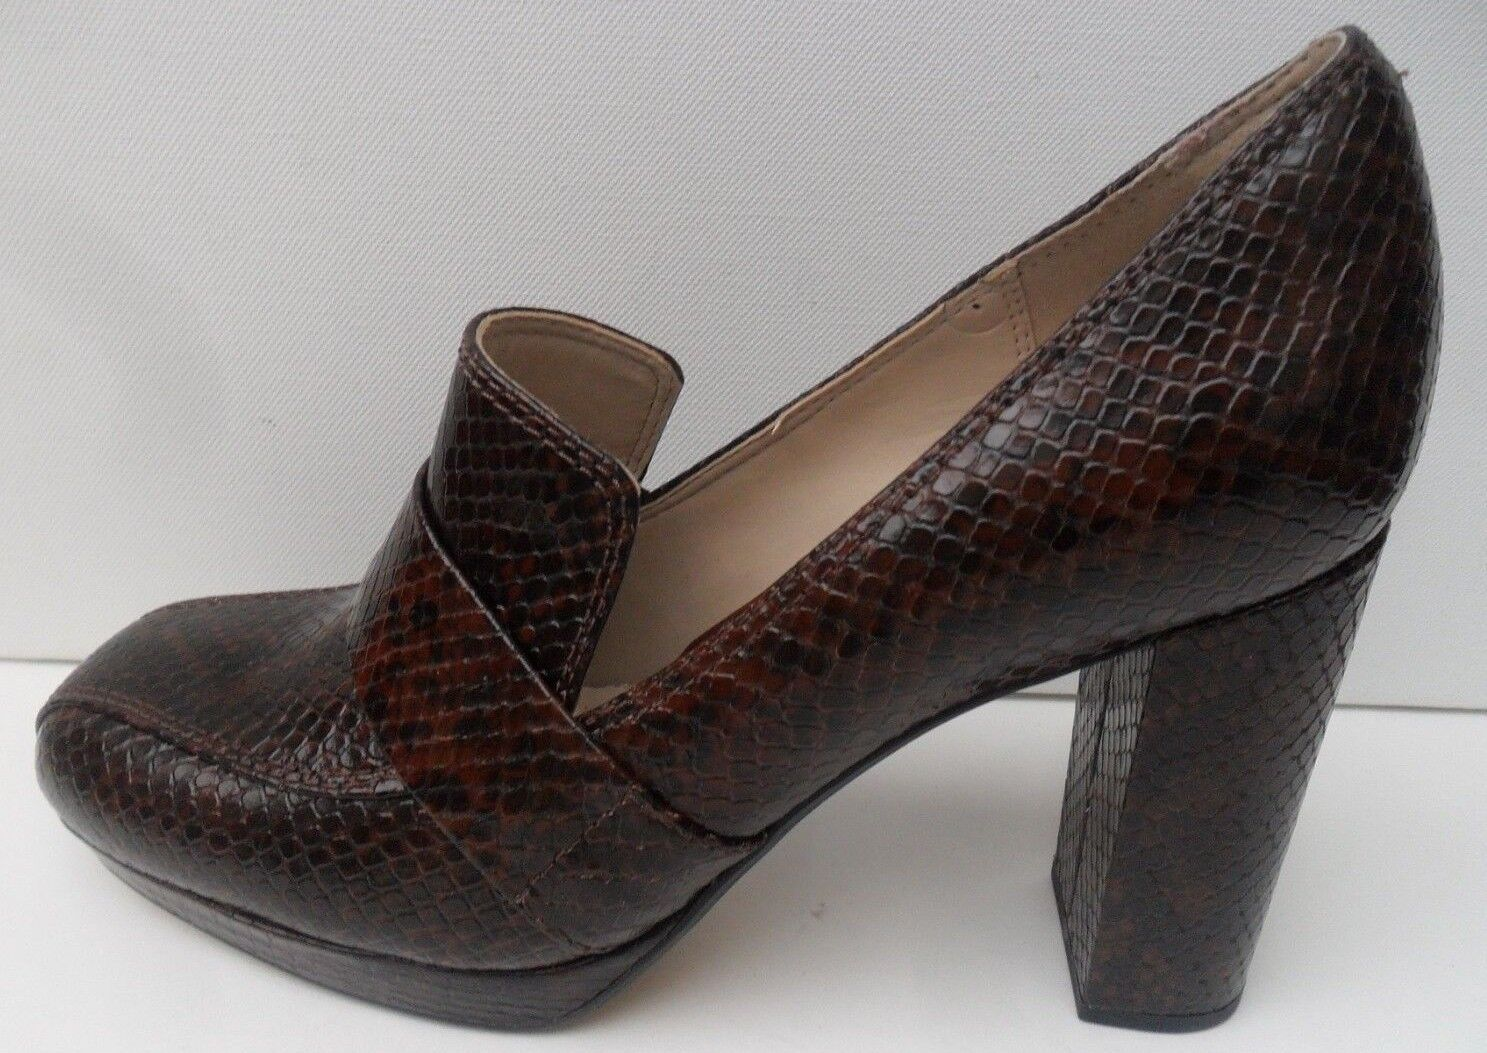 Women's Clarks Gabriel Soho Brown Leather High Heel shoes - Size UK 7 D EUR 41